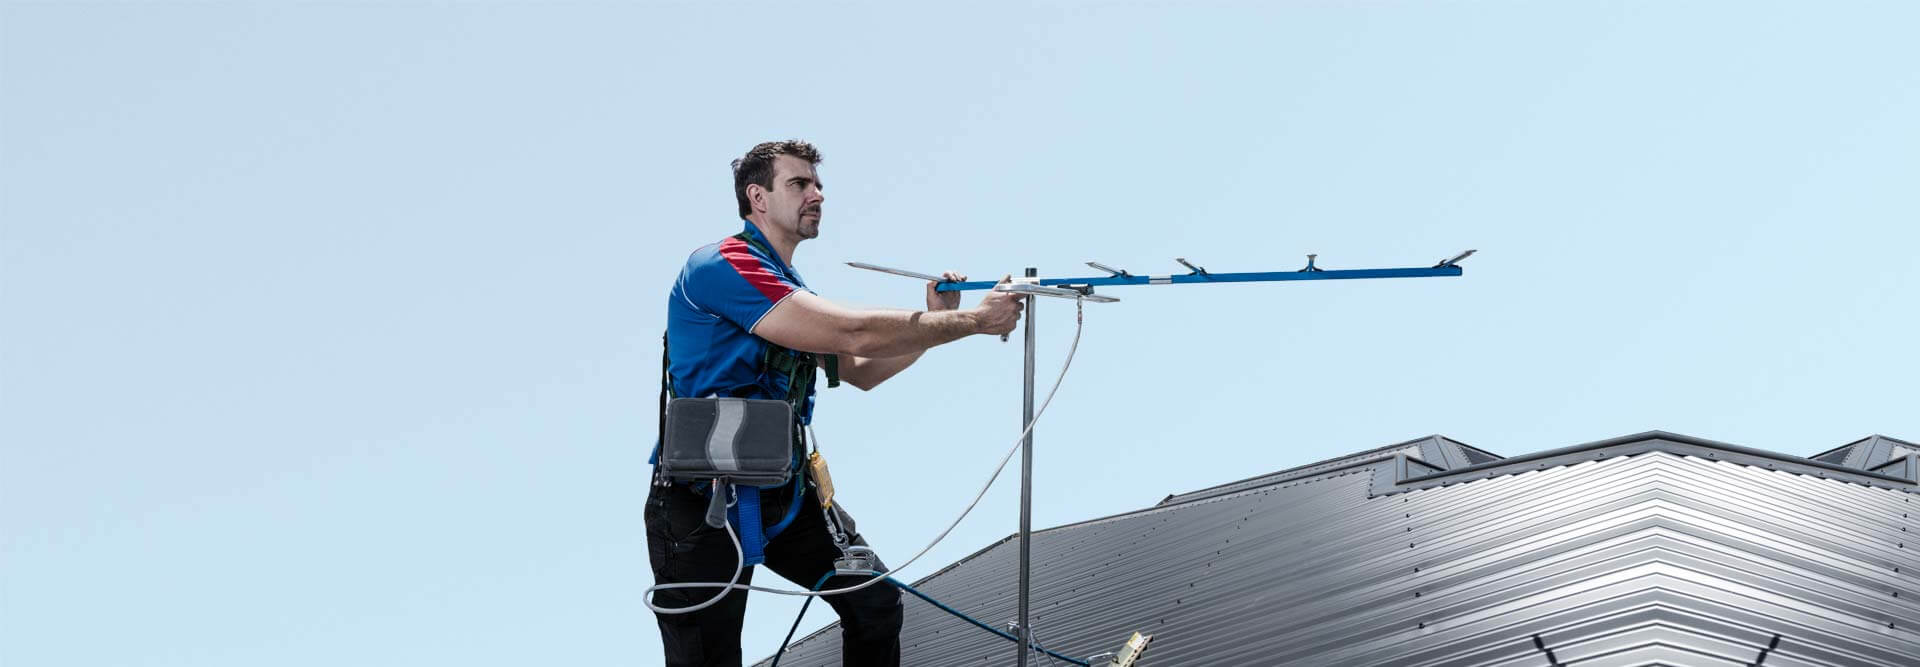 https://localbusinessau.org/wp-content/uploads/2019/02/Antenna-Installation-MrAntenna.jpg